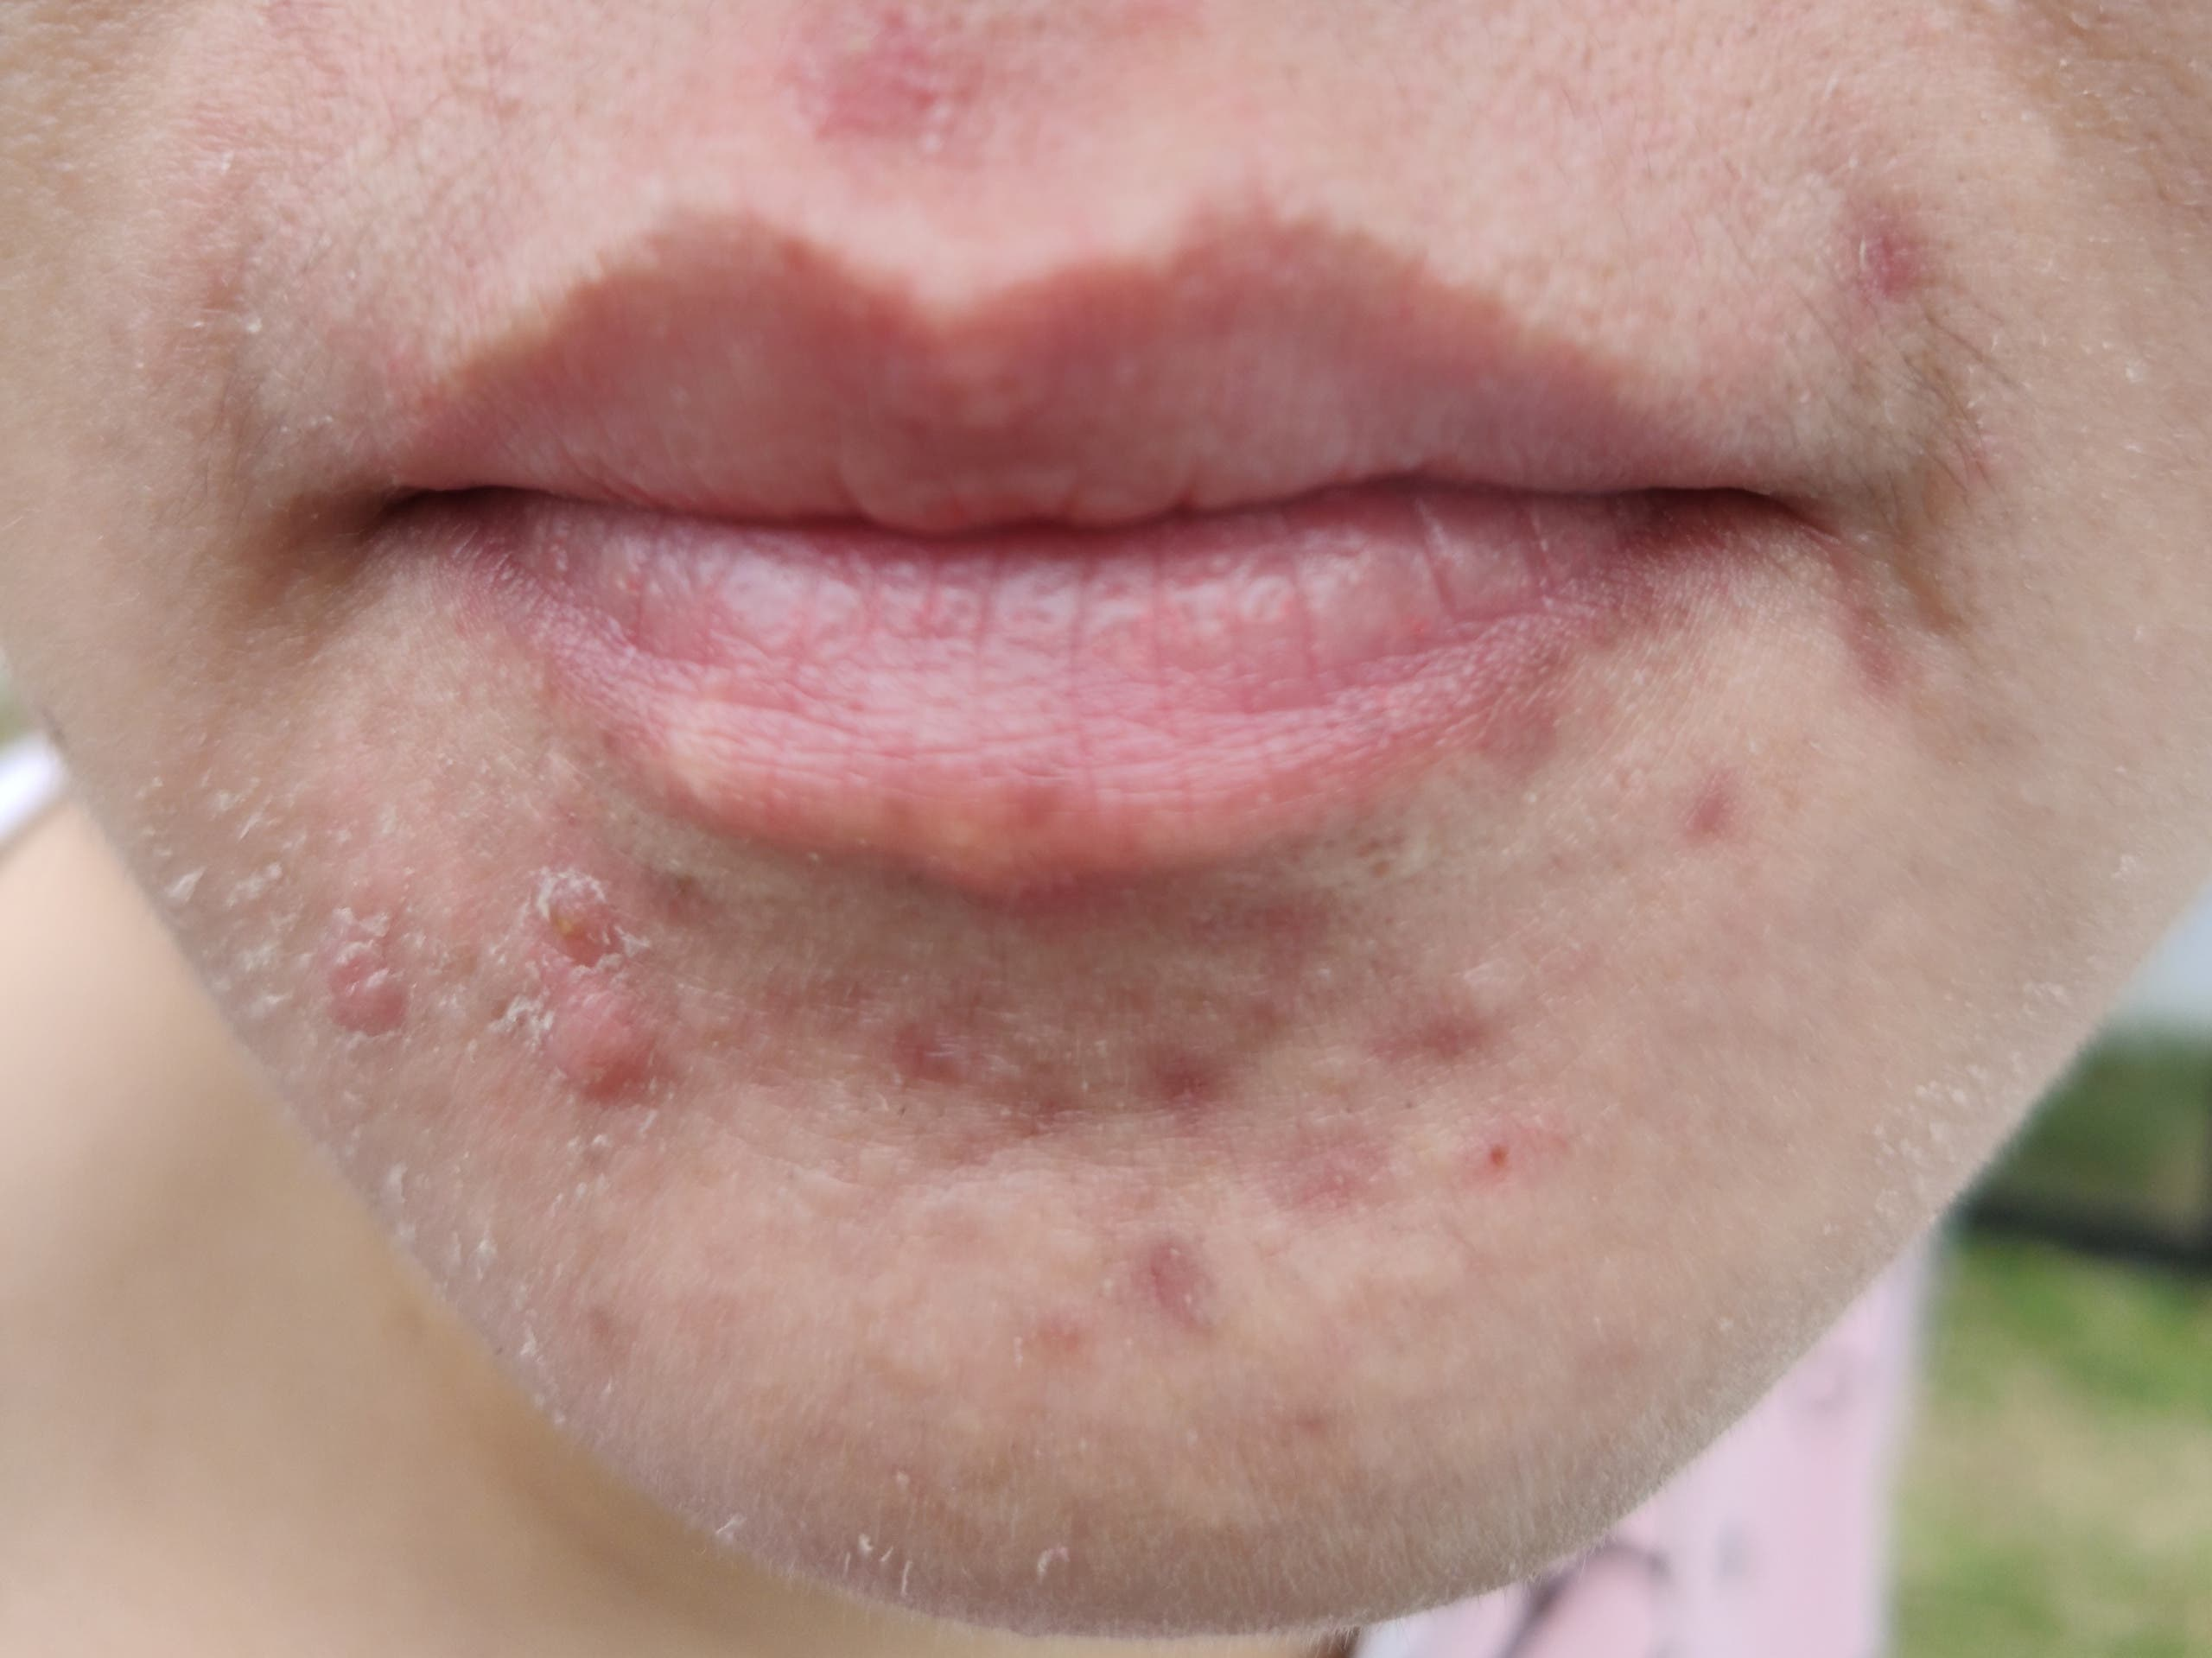 Some people with sensitive skin, and who wear masks for extend periods of time, develop mild skin rashes or dry lips as a result, says Dr Suresh Babu, Al Zahra Hospital Dubai's consultant dermatologist. (Supplied by AZHD)